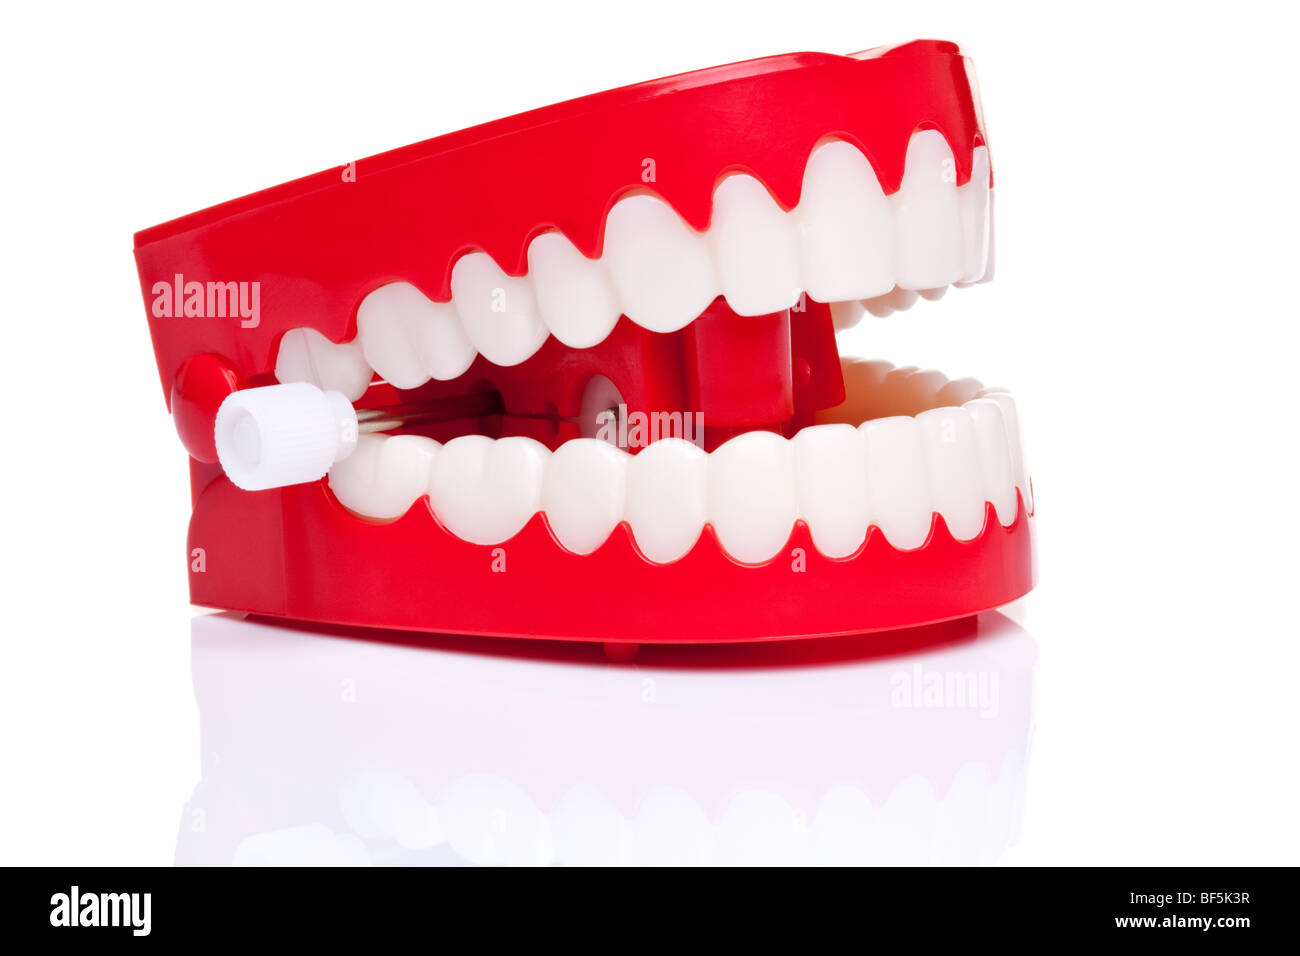 Une paire de dents de broutement liquidation blague sur un fond blanc, pur, photo haute résolution. Photo Stock